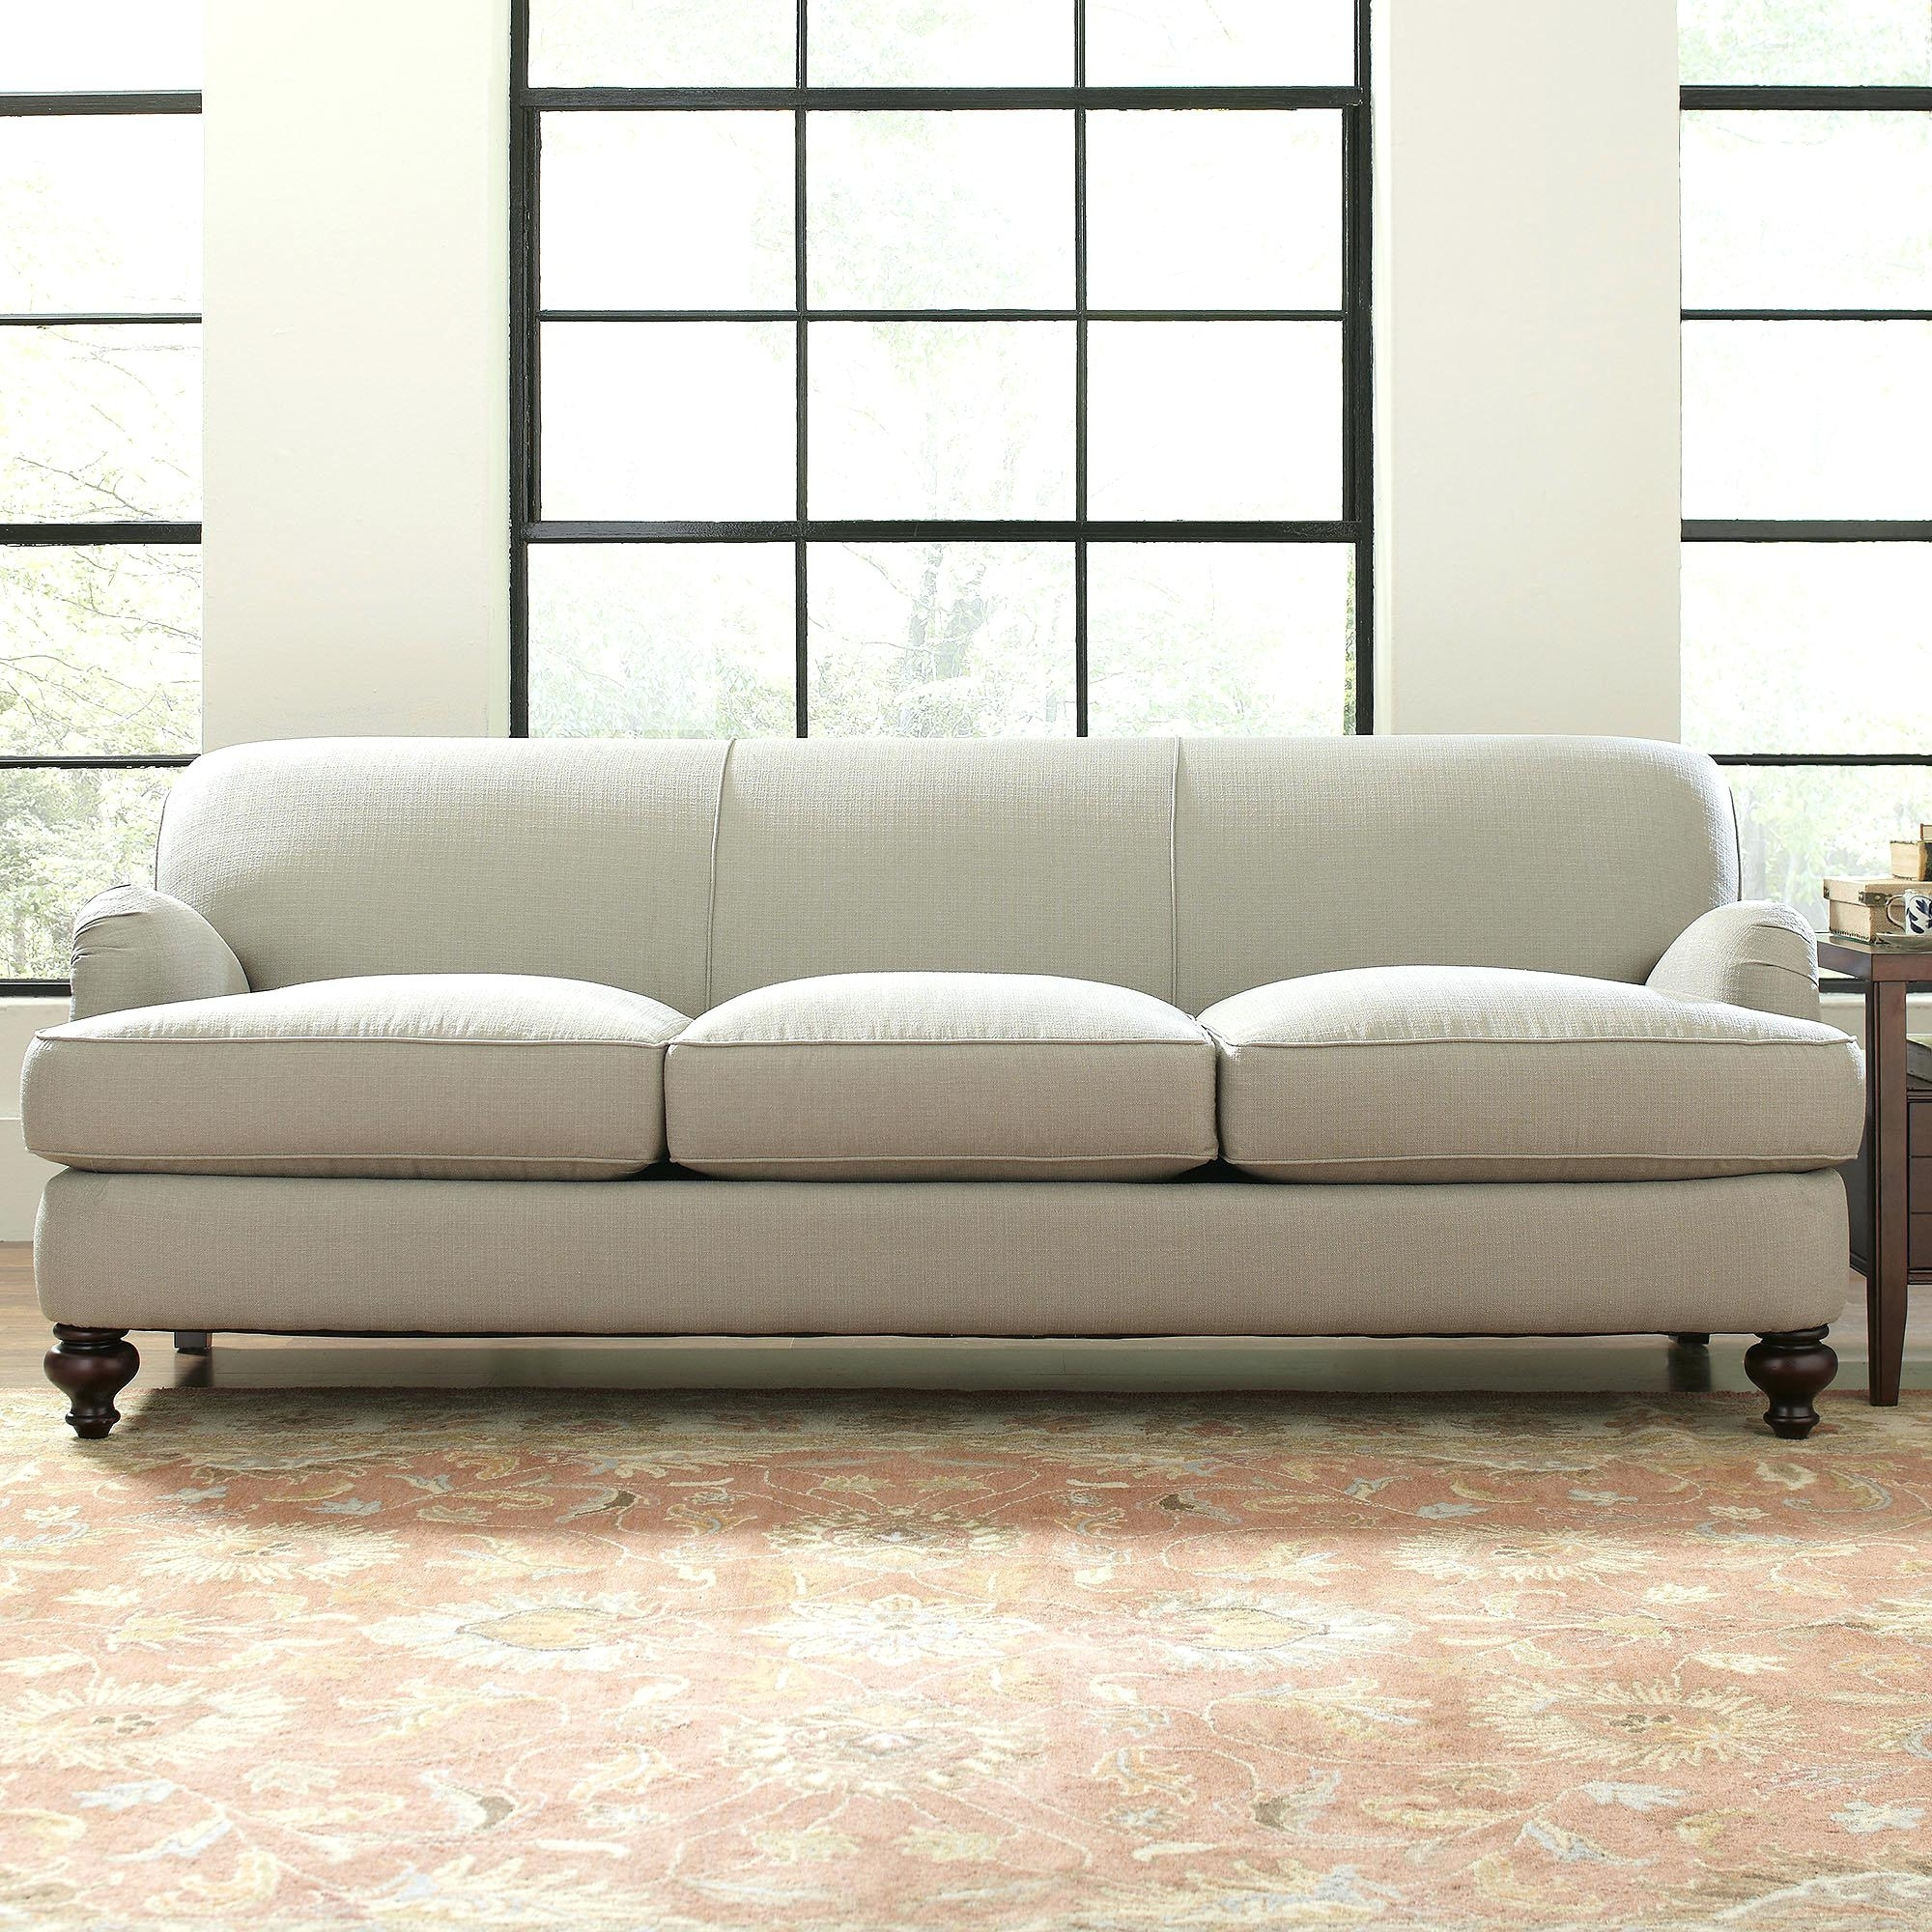 Durham Furniture Stores Raleigh Region Ontario Used With Well Liked Durham Region Sectional Sofas (Gallery 7 of 20)